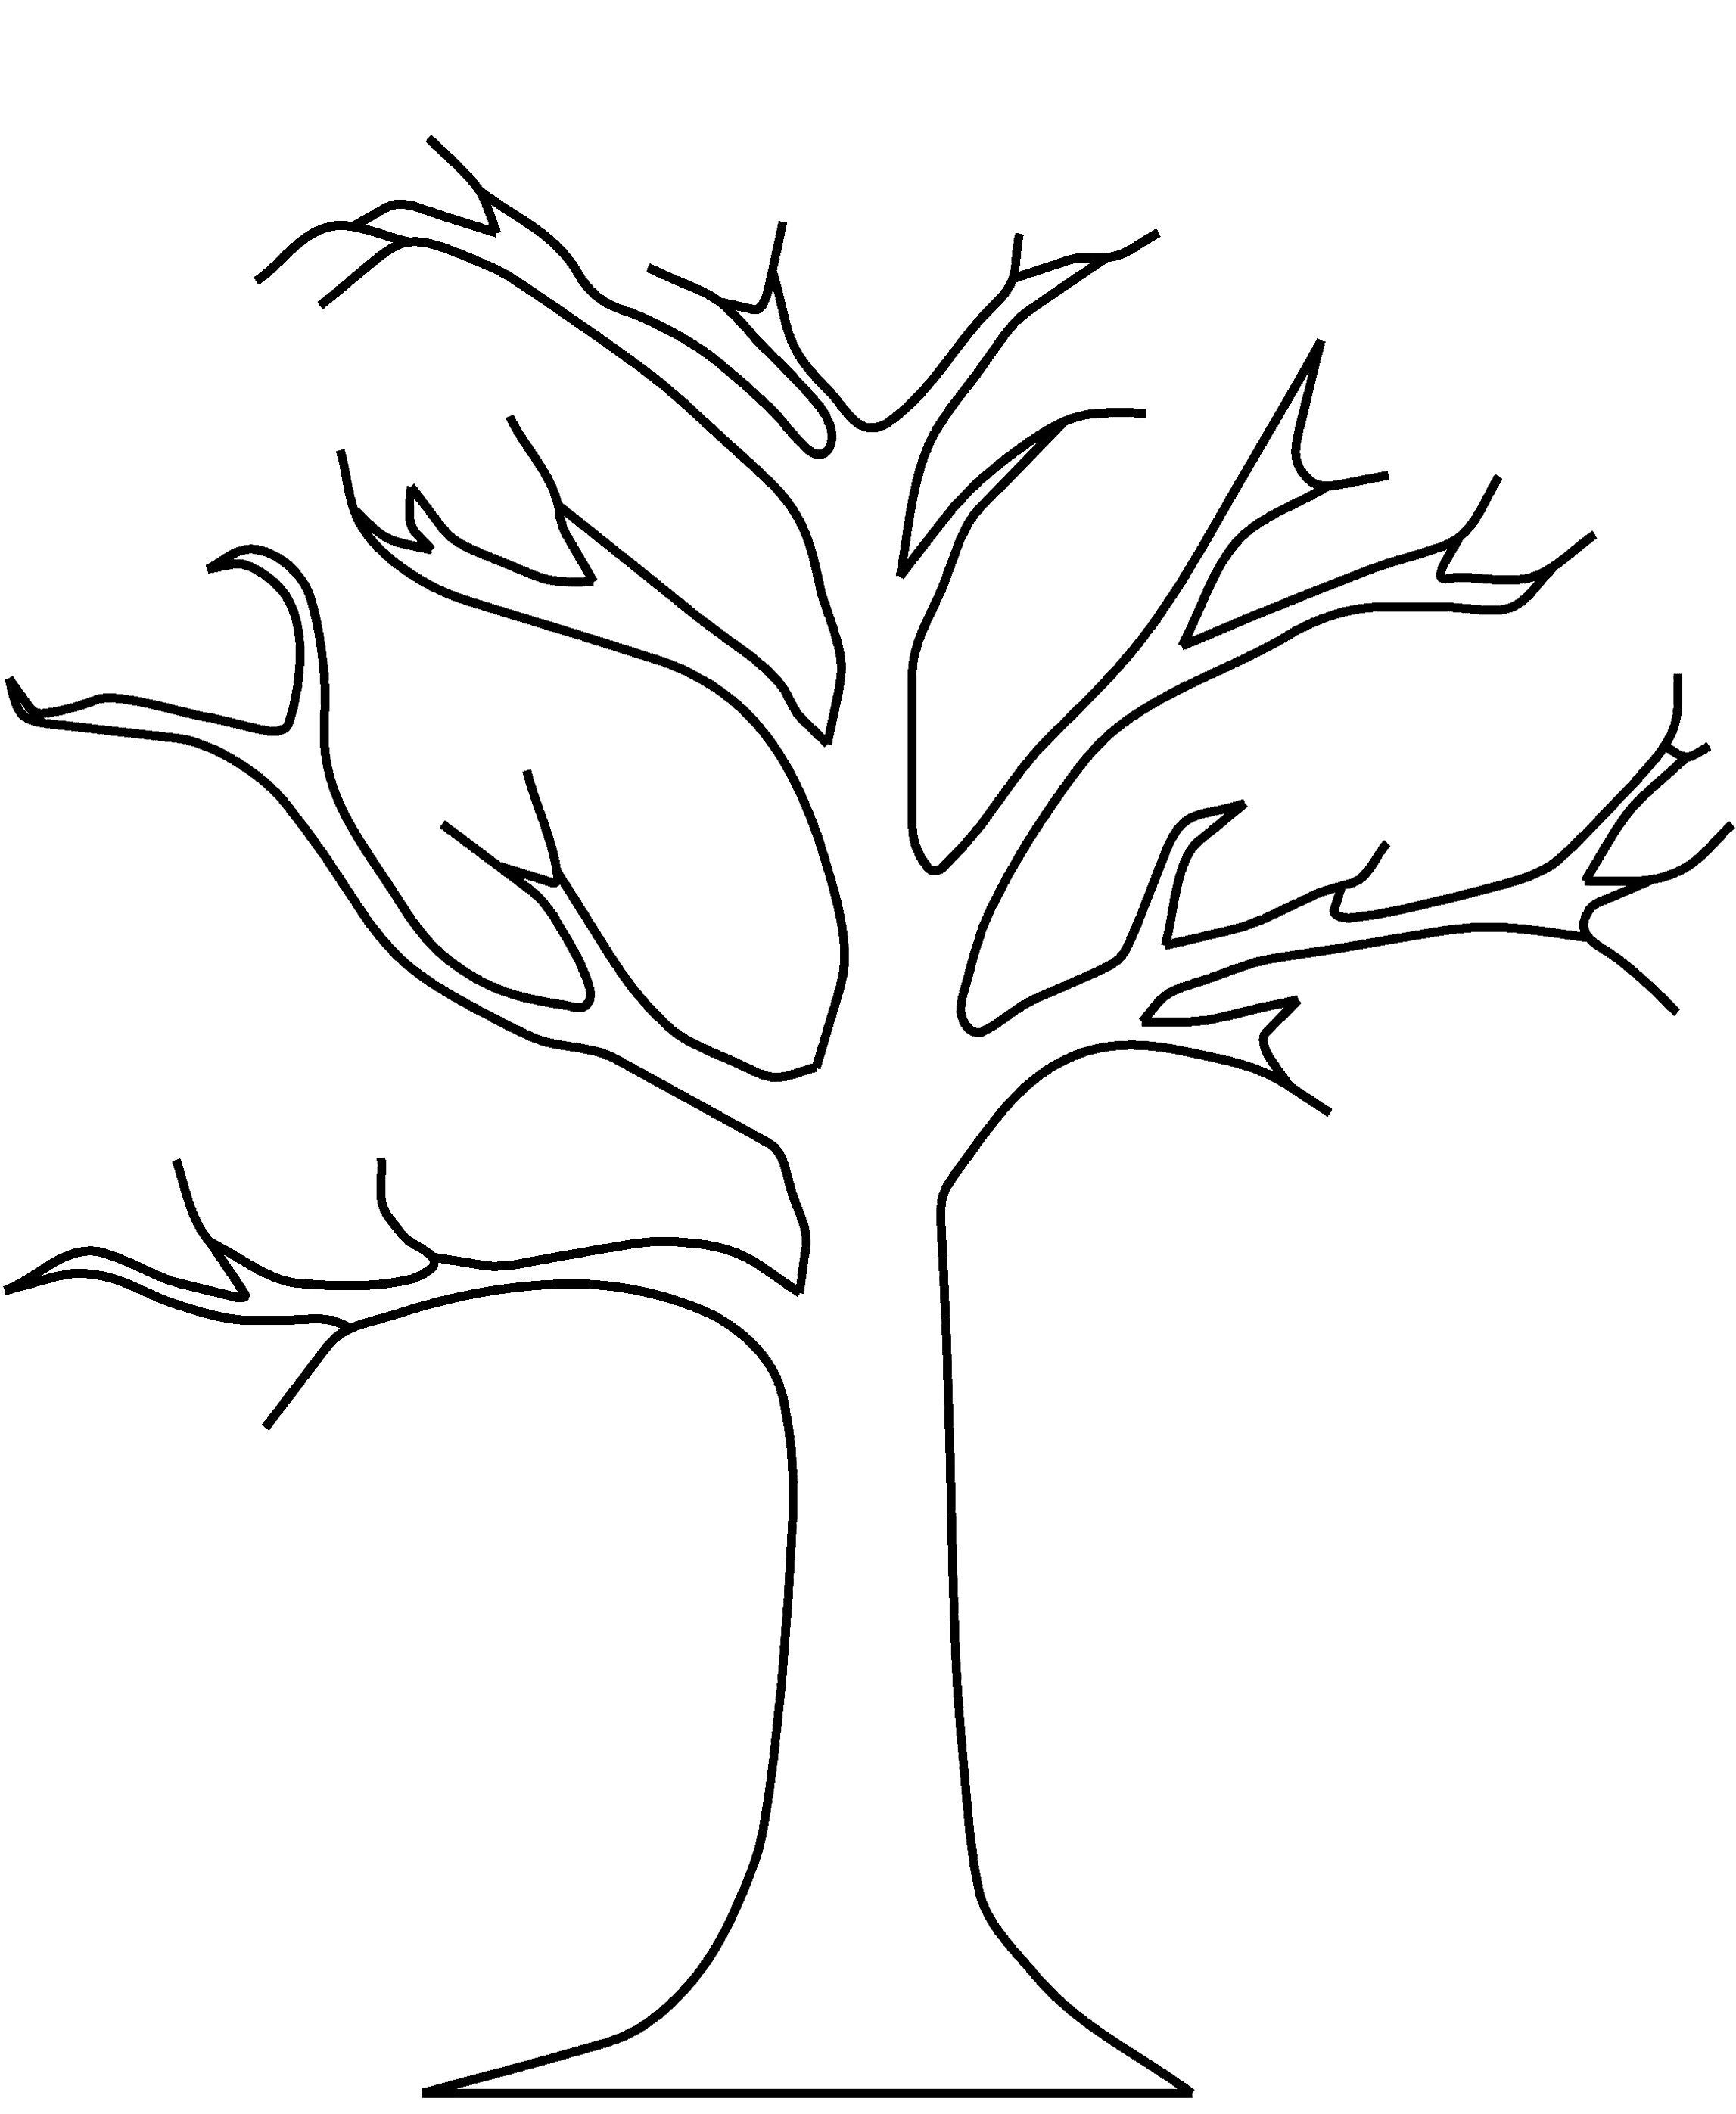 Apple Tree Without Leaves Coloring Pages Tree coloring